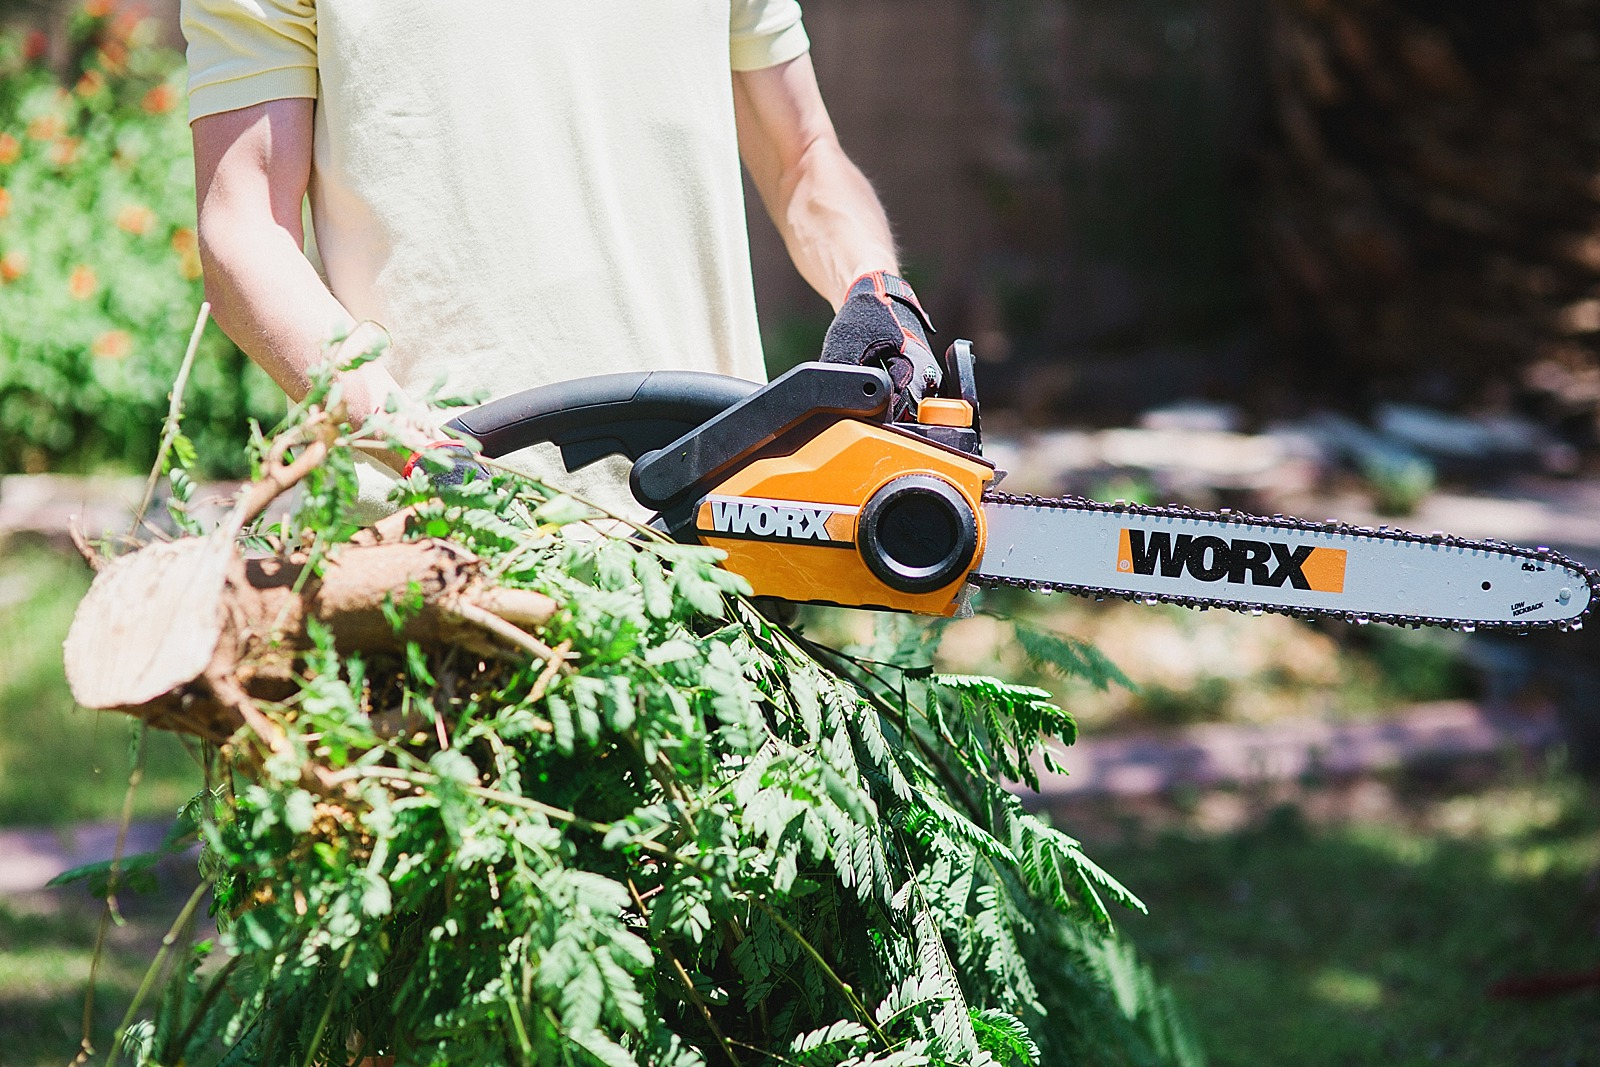 worx-chain-saw-review-gardening-blogger-home-diana-elizabeth-120a